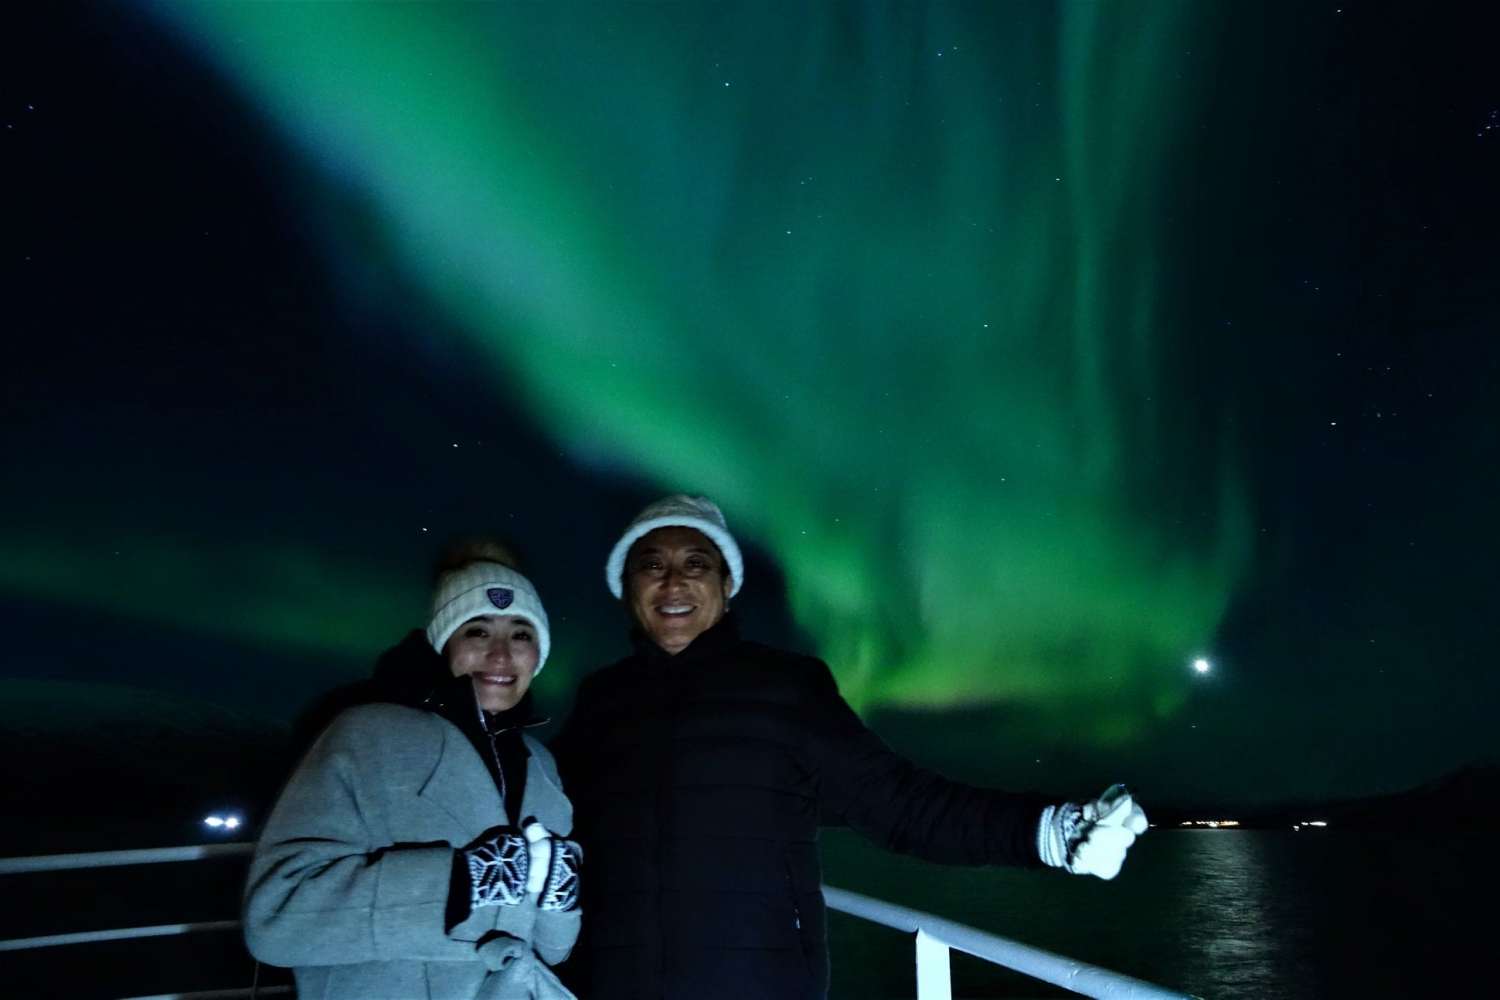 Two persons smiling with The Northern Lights in the background